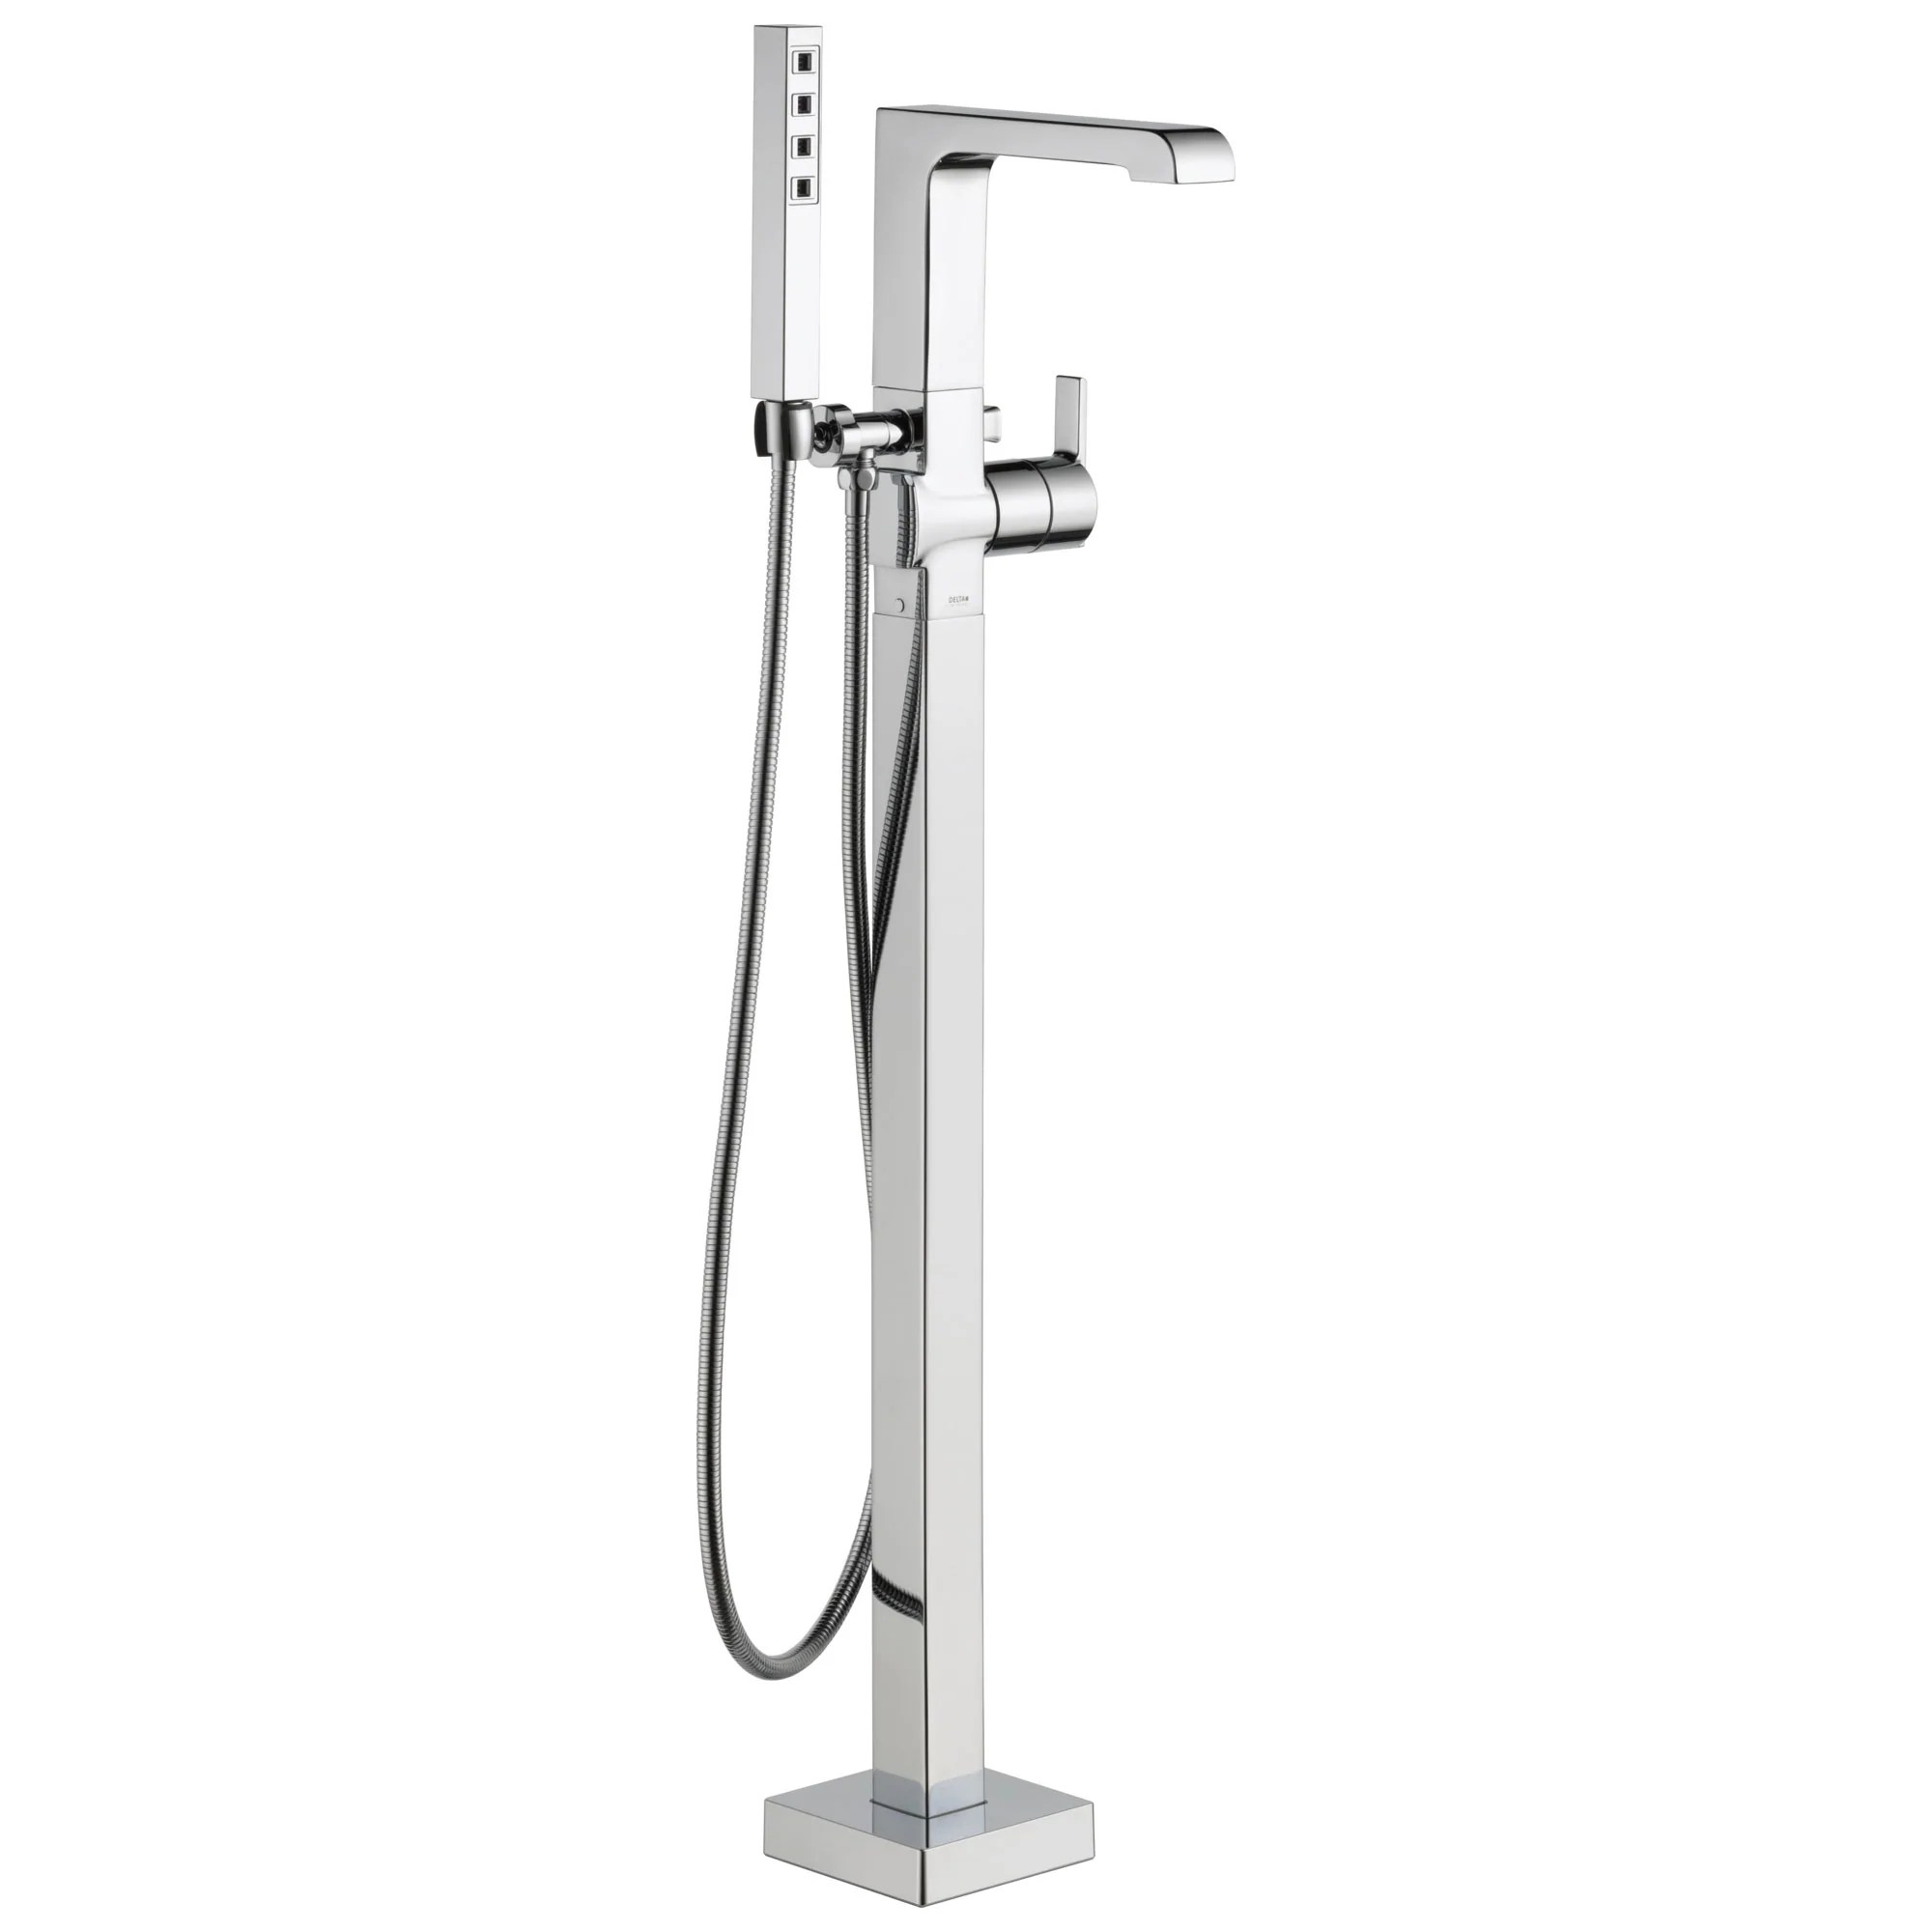 delta ara collection chrome floor mount freestanding contemporary tub filler faucet with hand shower includes trim kit and rough in valve d2073v